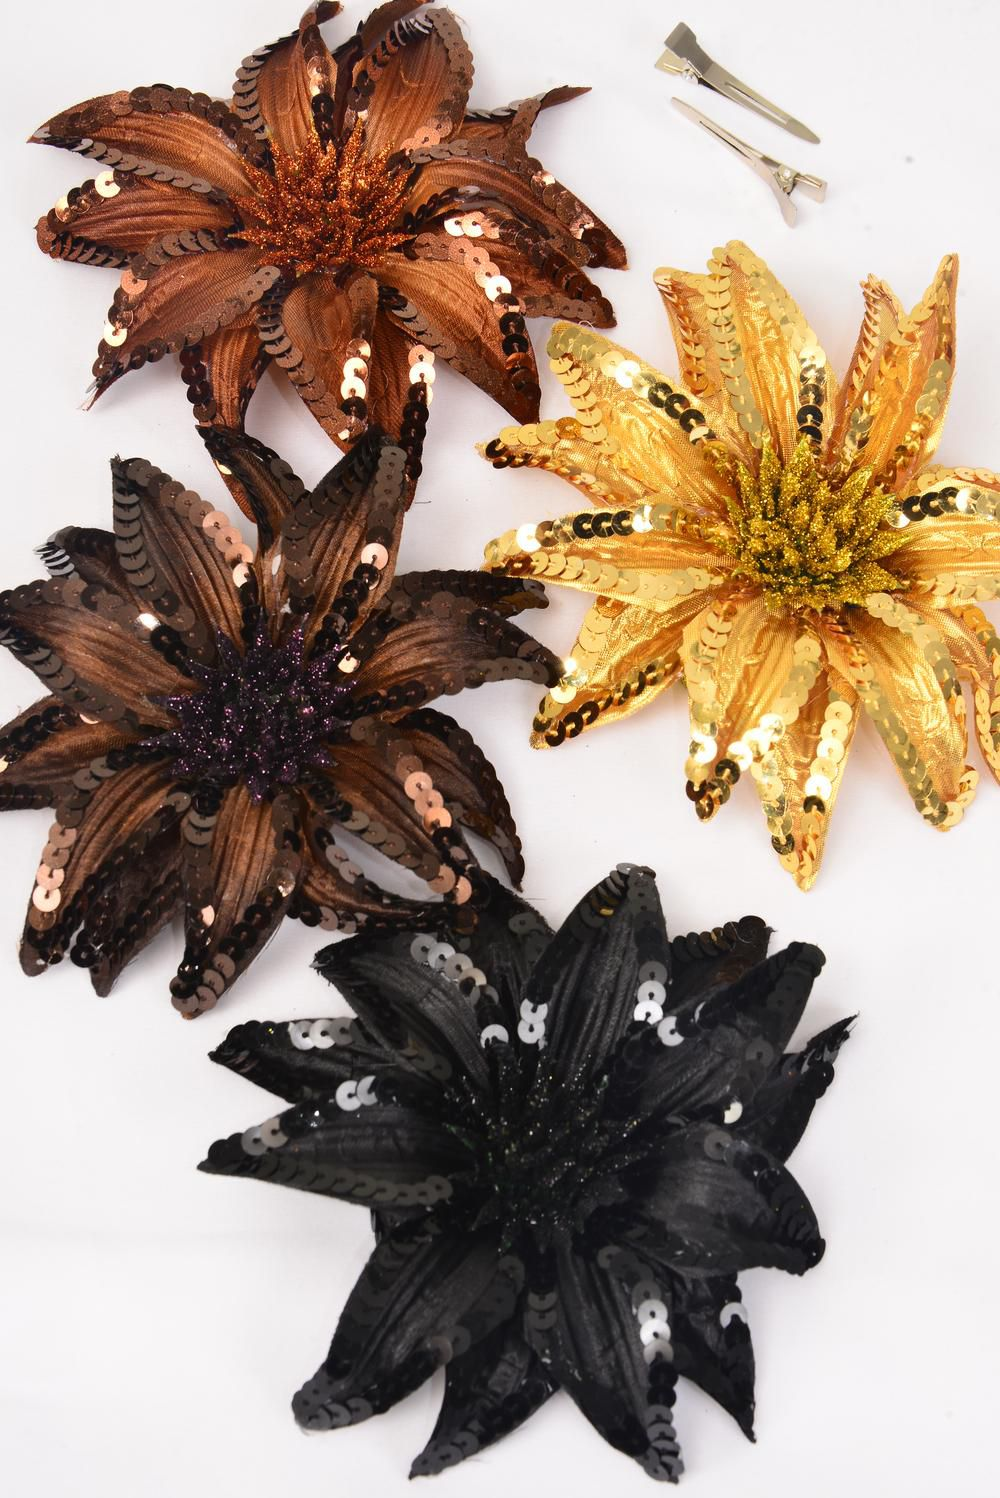 "Flower Sequin Large Browntone Alligator Clip & Brooch & Elastic Pony/DZ **Brown Tone Mix** Flower Size-6"",Alligator Clip & Elastic Pony & Brooch,3 of each Color Asst,Display Card & UPC Code,W Clear Box"